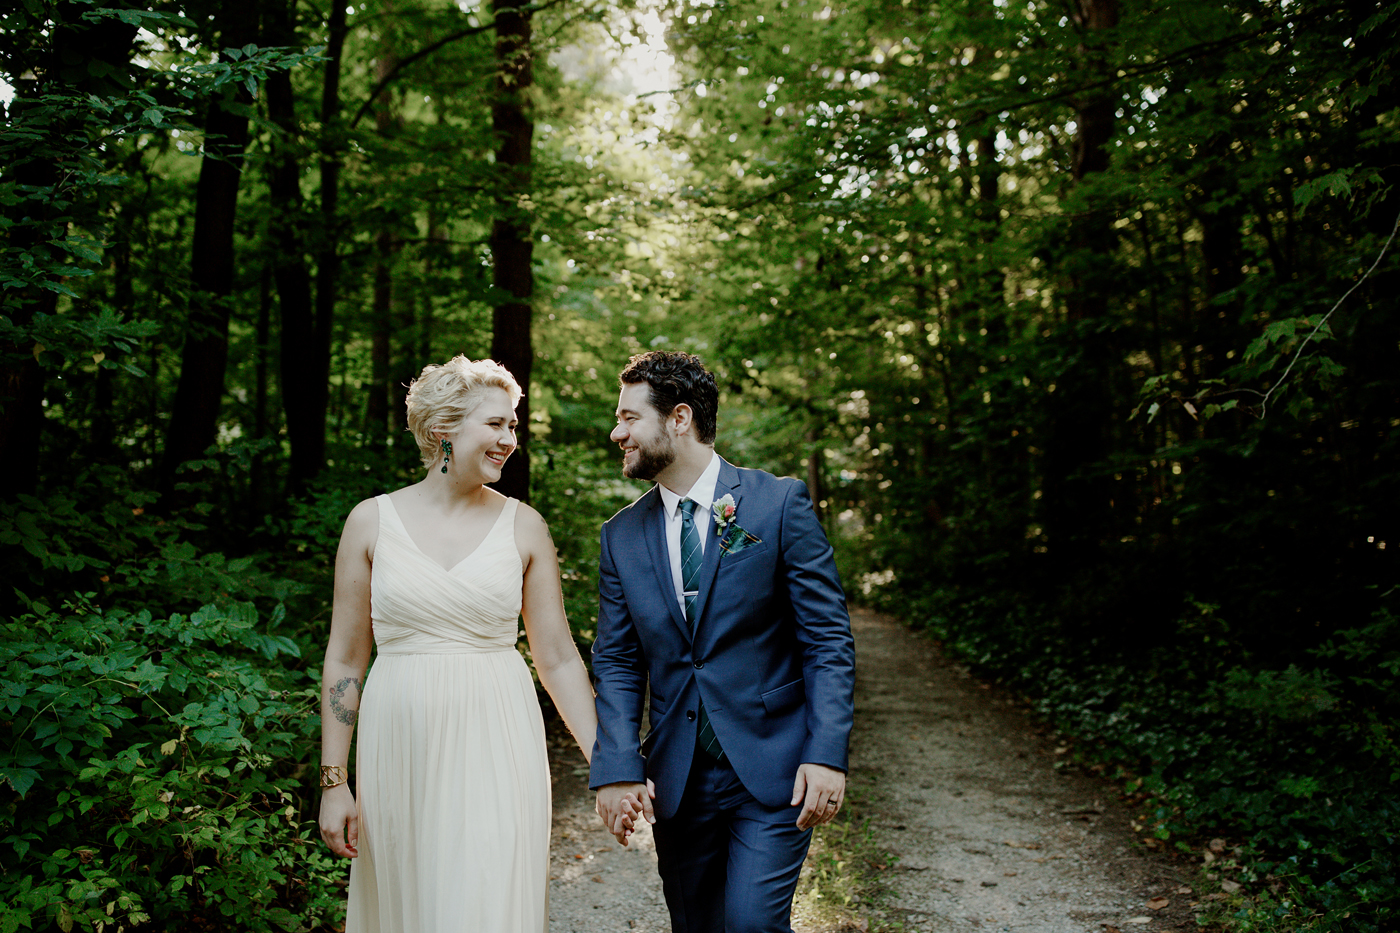 amandavanvels_backyardwedding_0291.jpg